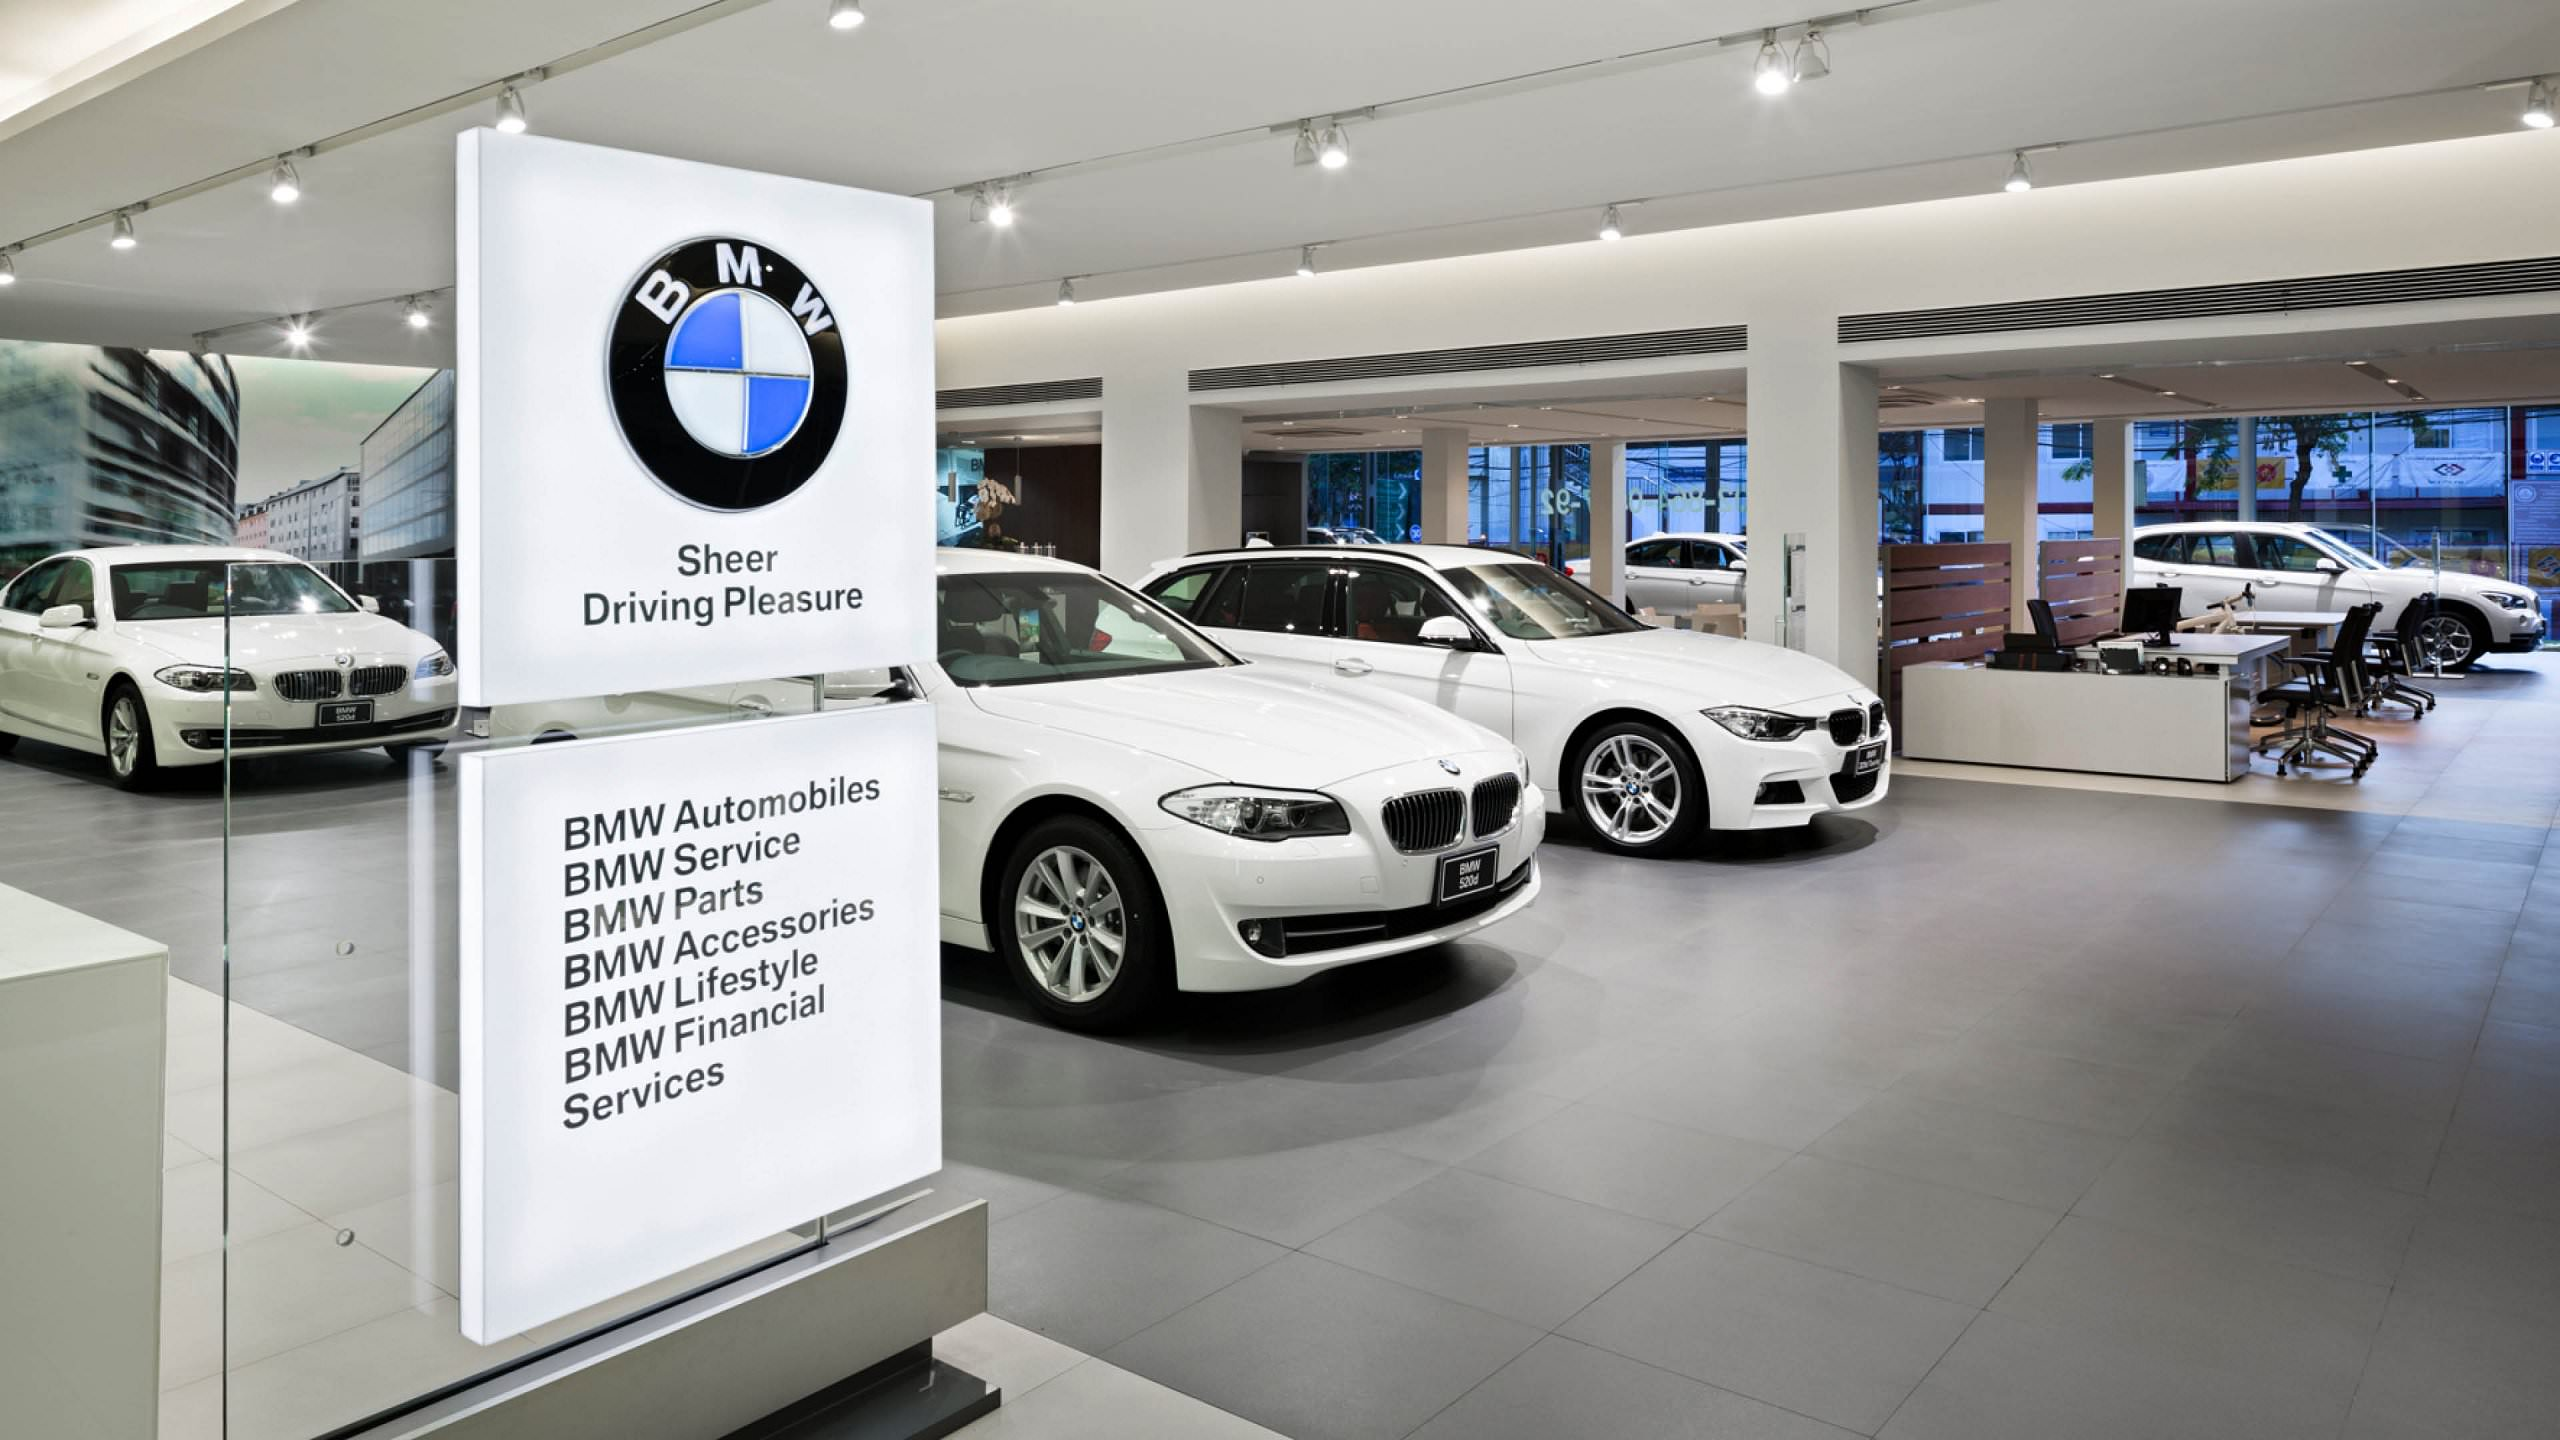 Bmw Negotiating With Mining Companies To Secure Electric Vehicle